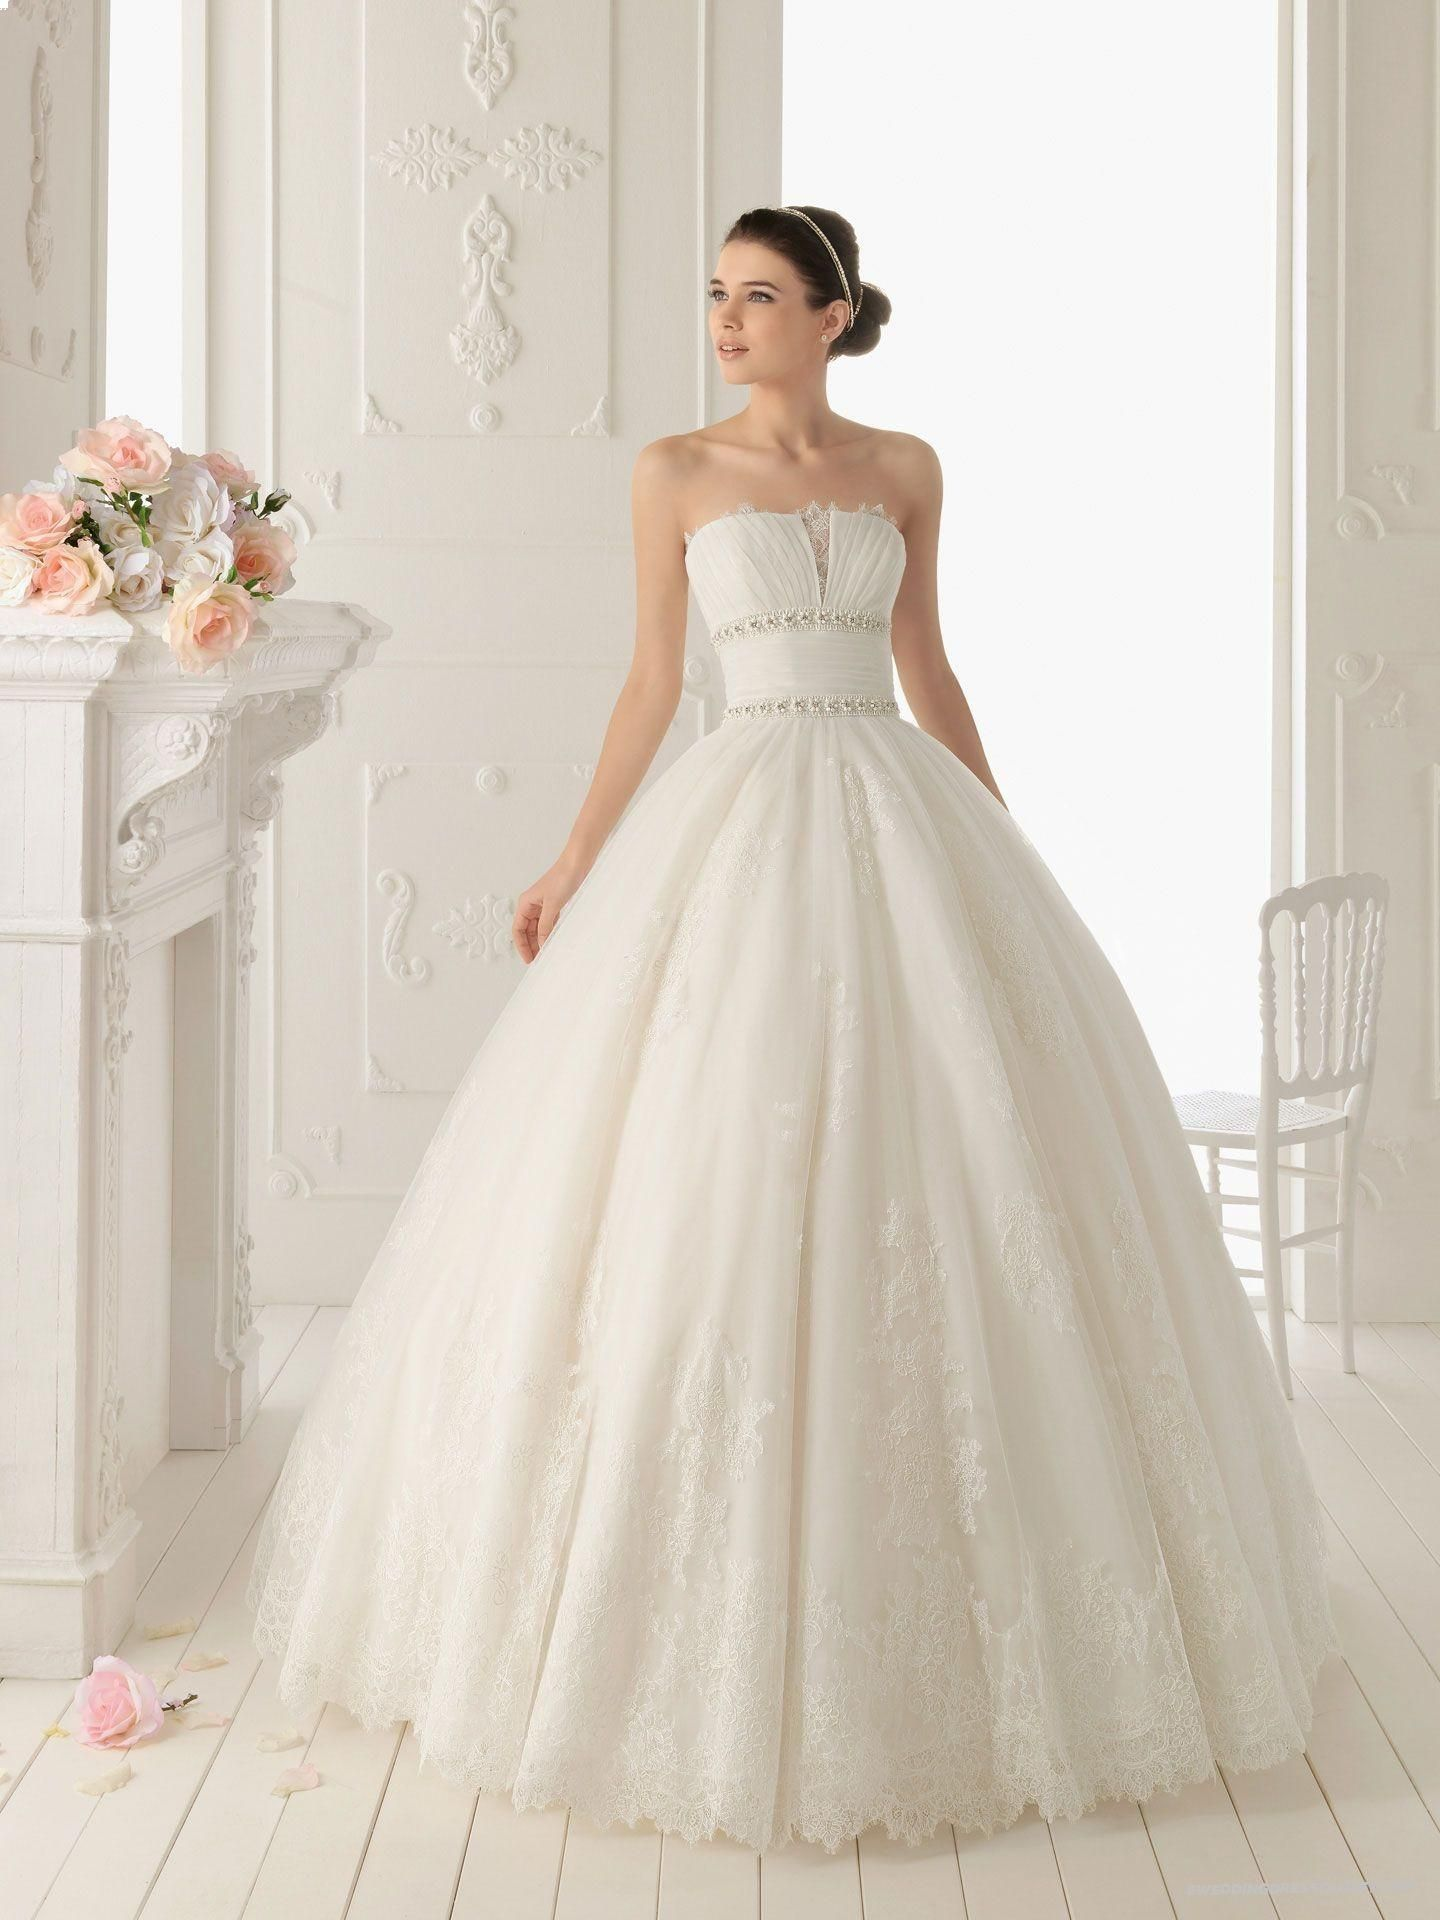 And Lace Ball Gown Style With Fully Shirred Skirt New Strapless Wedding Dress